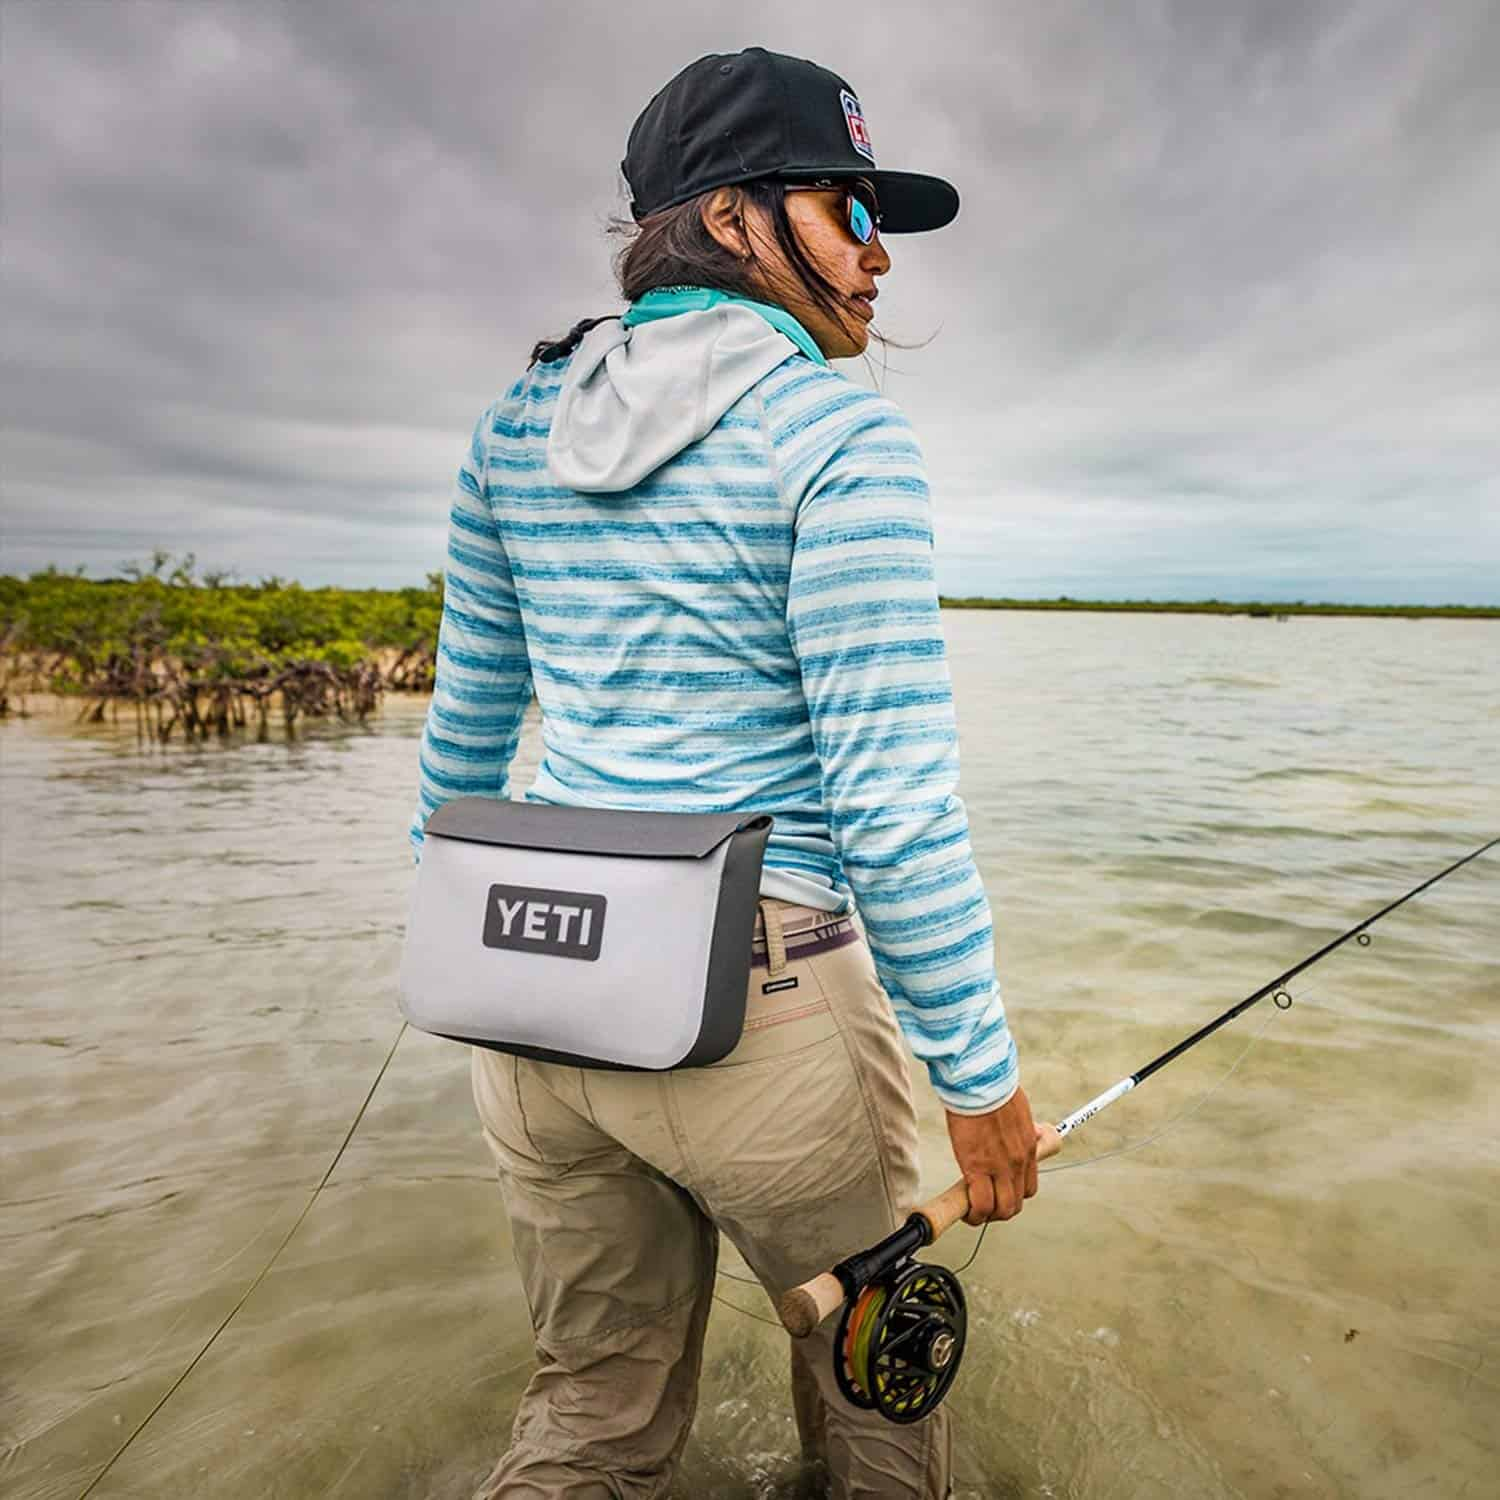 YETI waterproof fanny pack